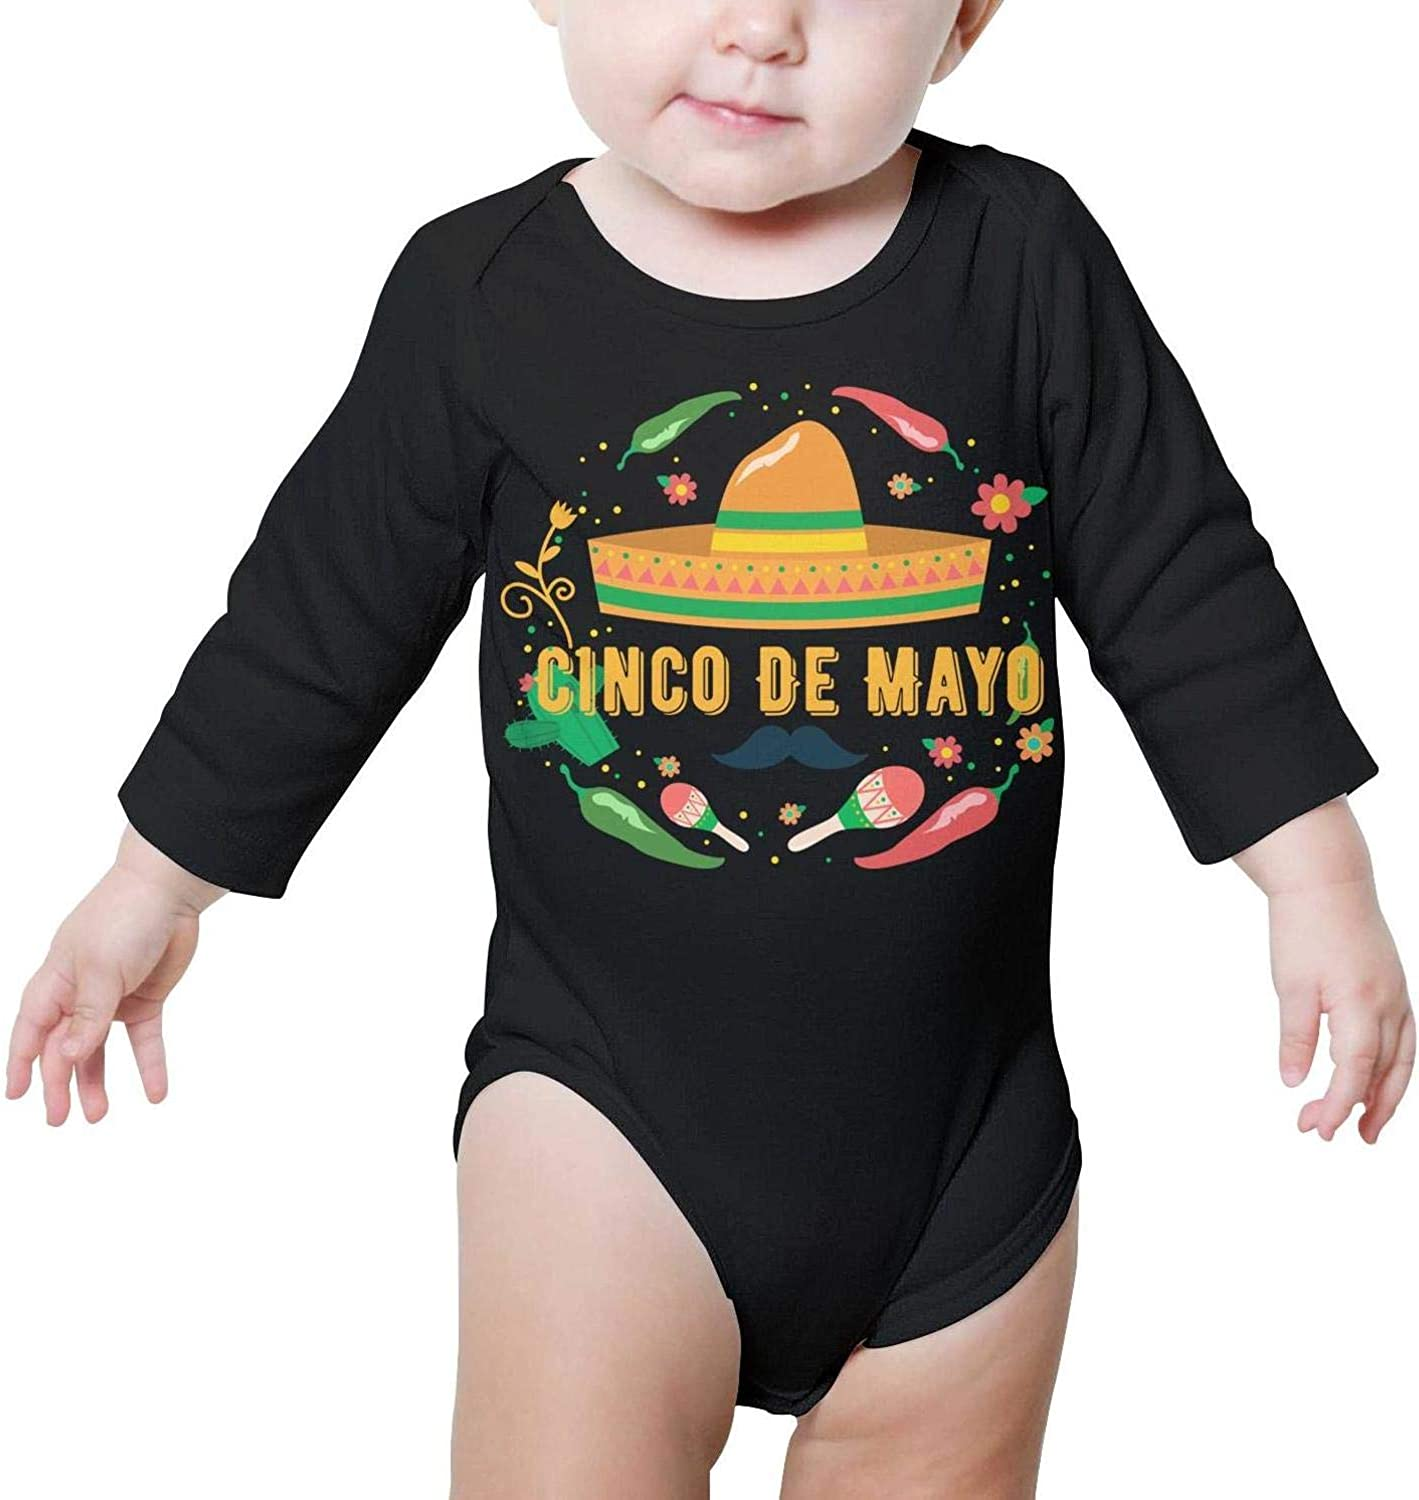 Cinco de Mayo Id Hit That White Baby Onesie Bodysuit Long Sleeve Natural Organic Cotton Gift